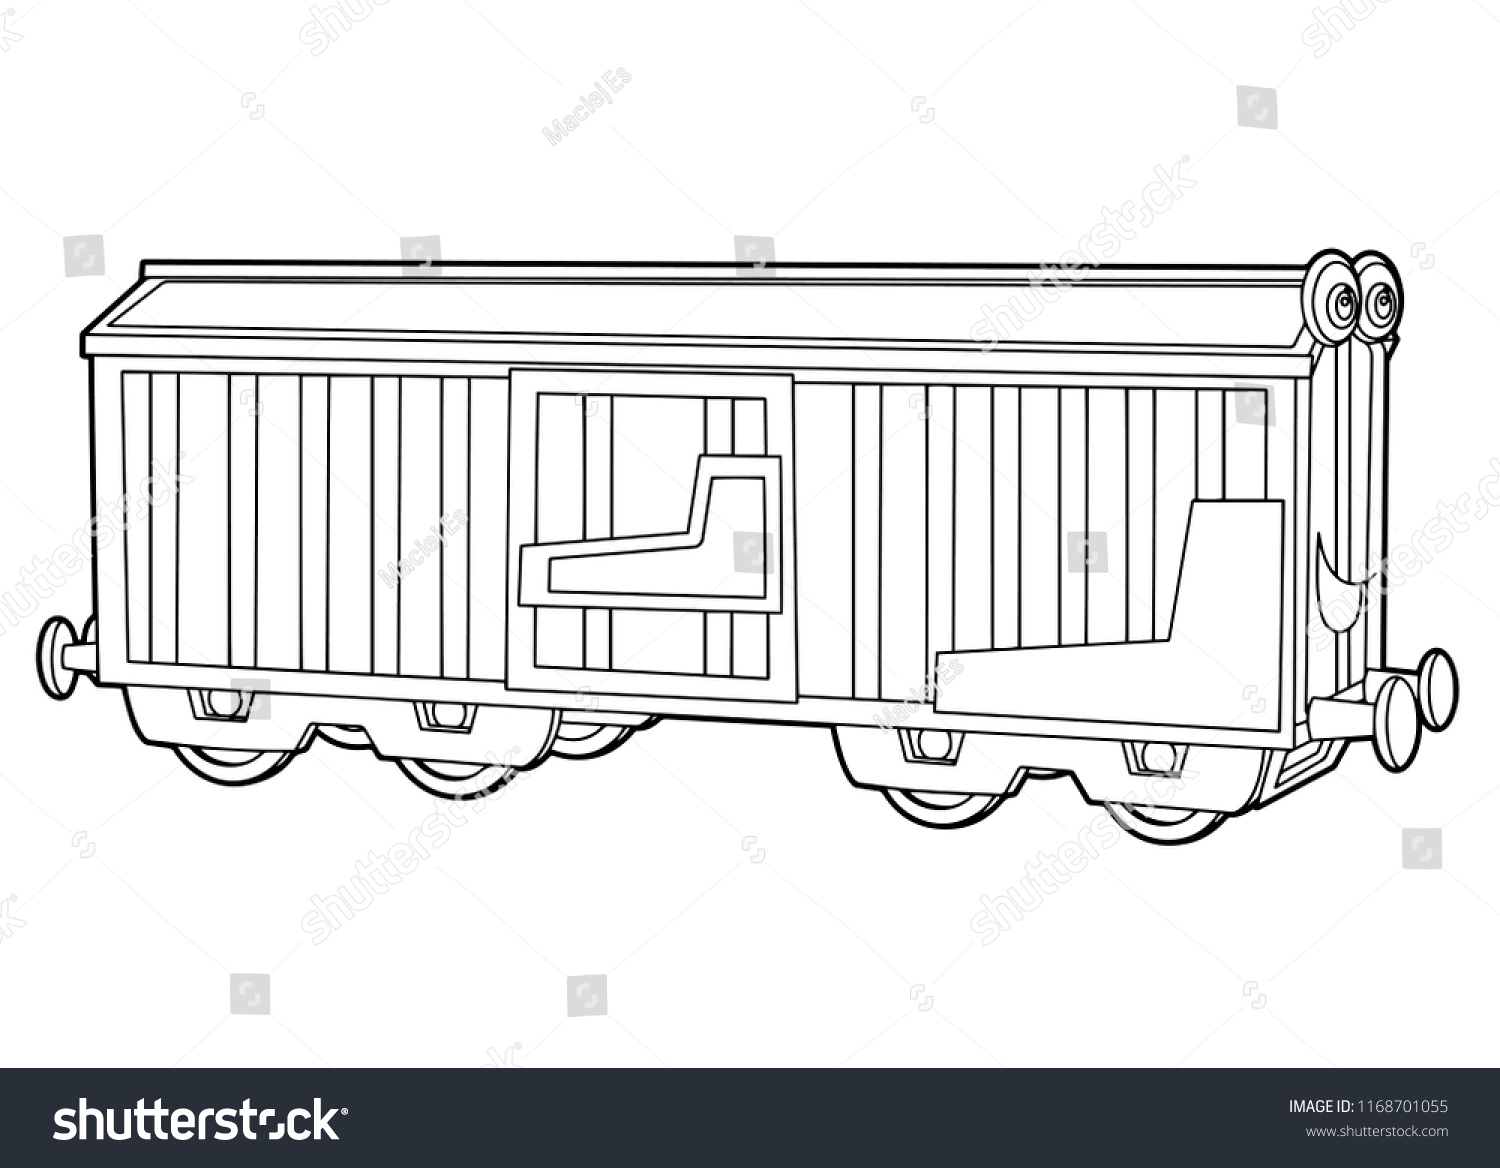 Coloring Page Train Wagon Illustration Children Stock Vector